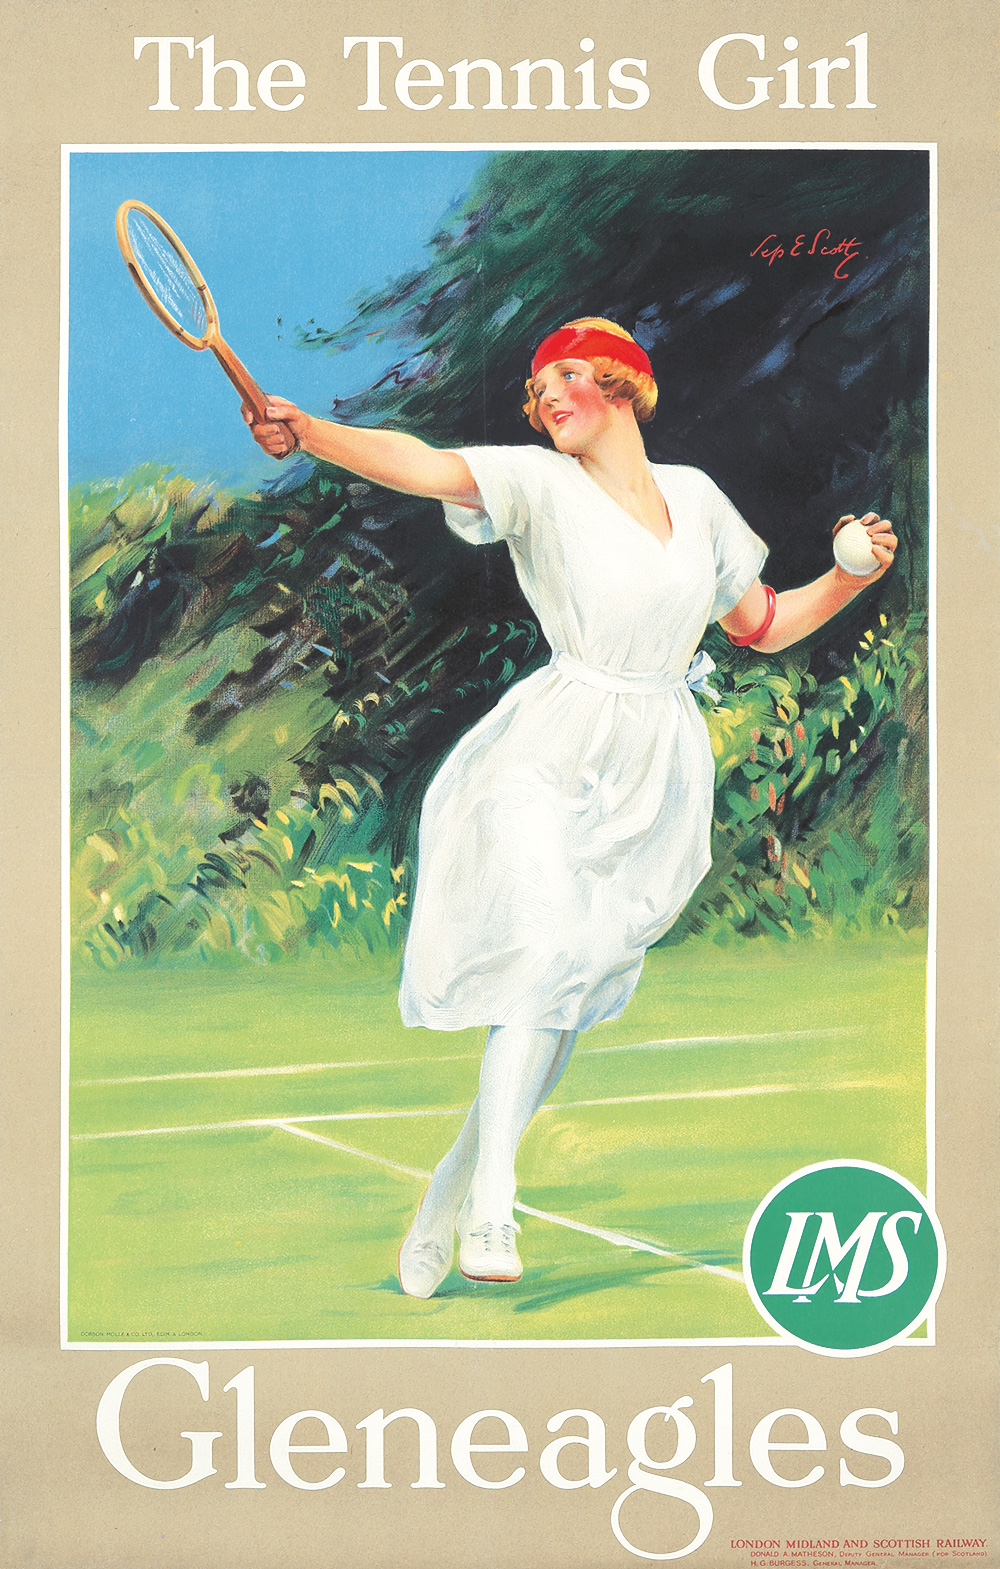 354. Gleneagles / The Tennis Girl.